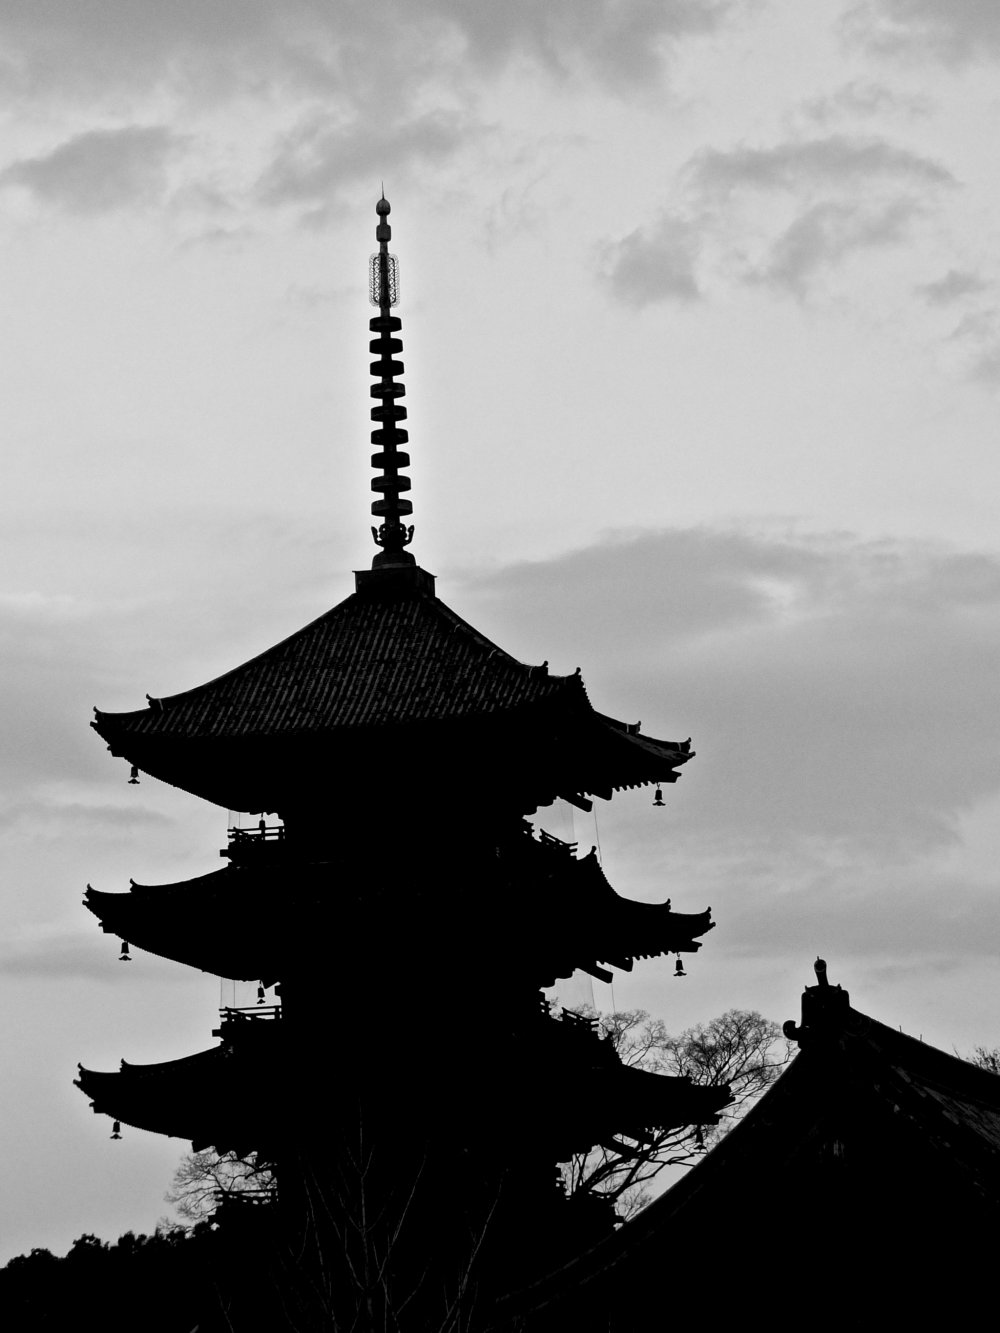 To-ji Temple and its dark pagoda dominate the surrounding skyline